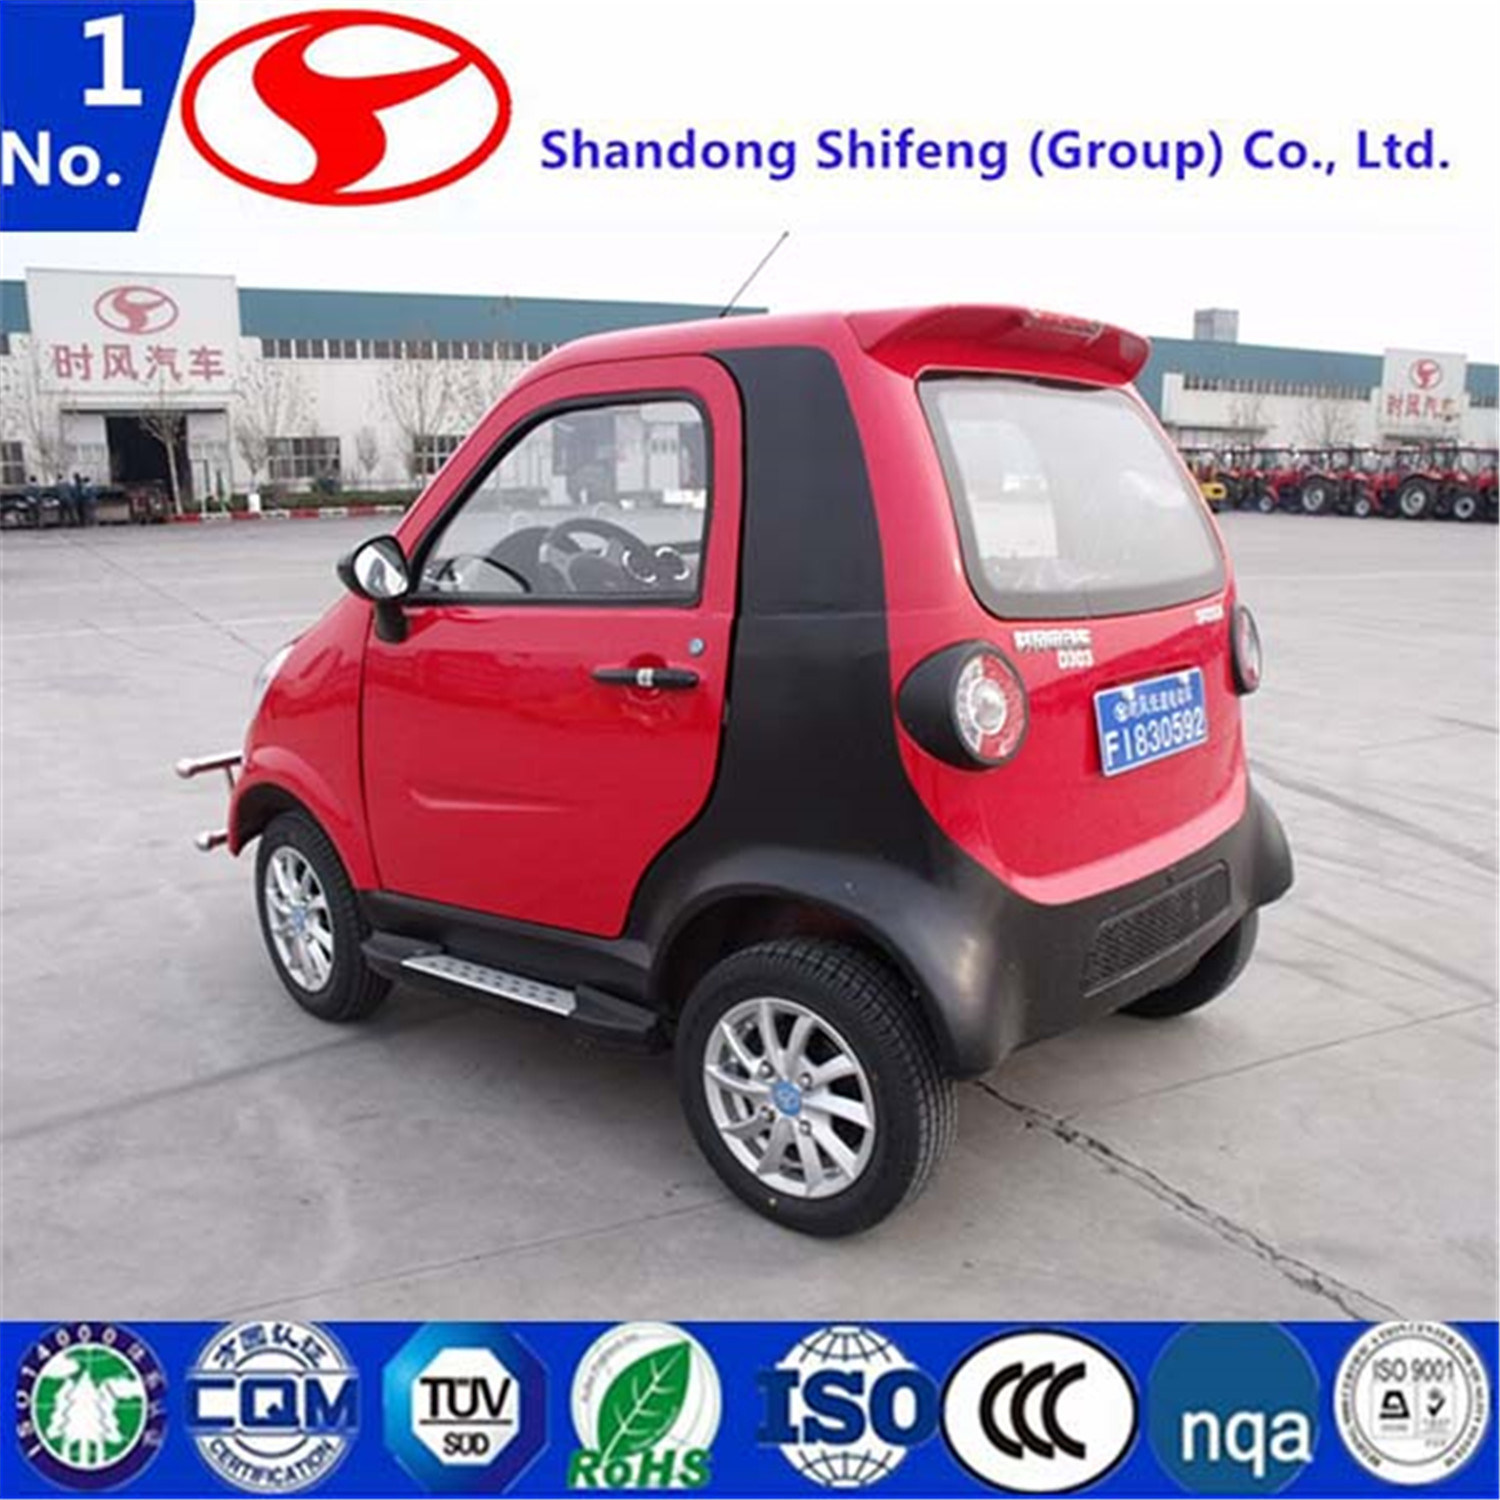 China Small Cheap Electric Cars Vehicles Made in China s